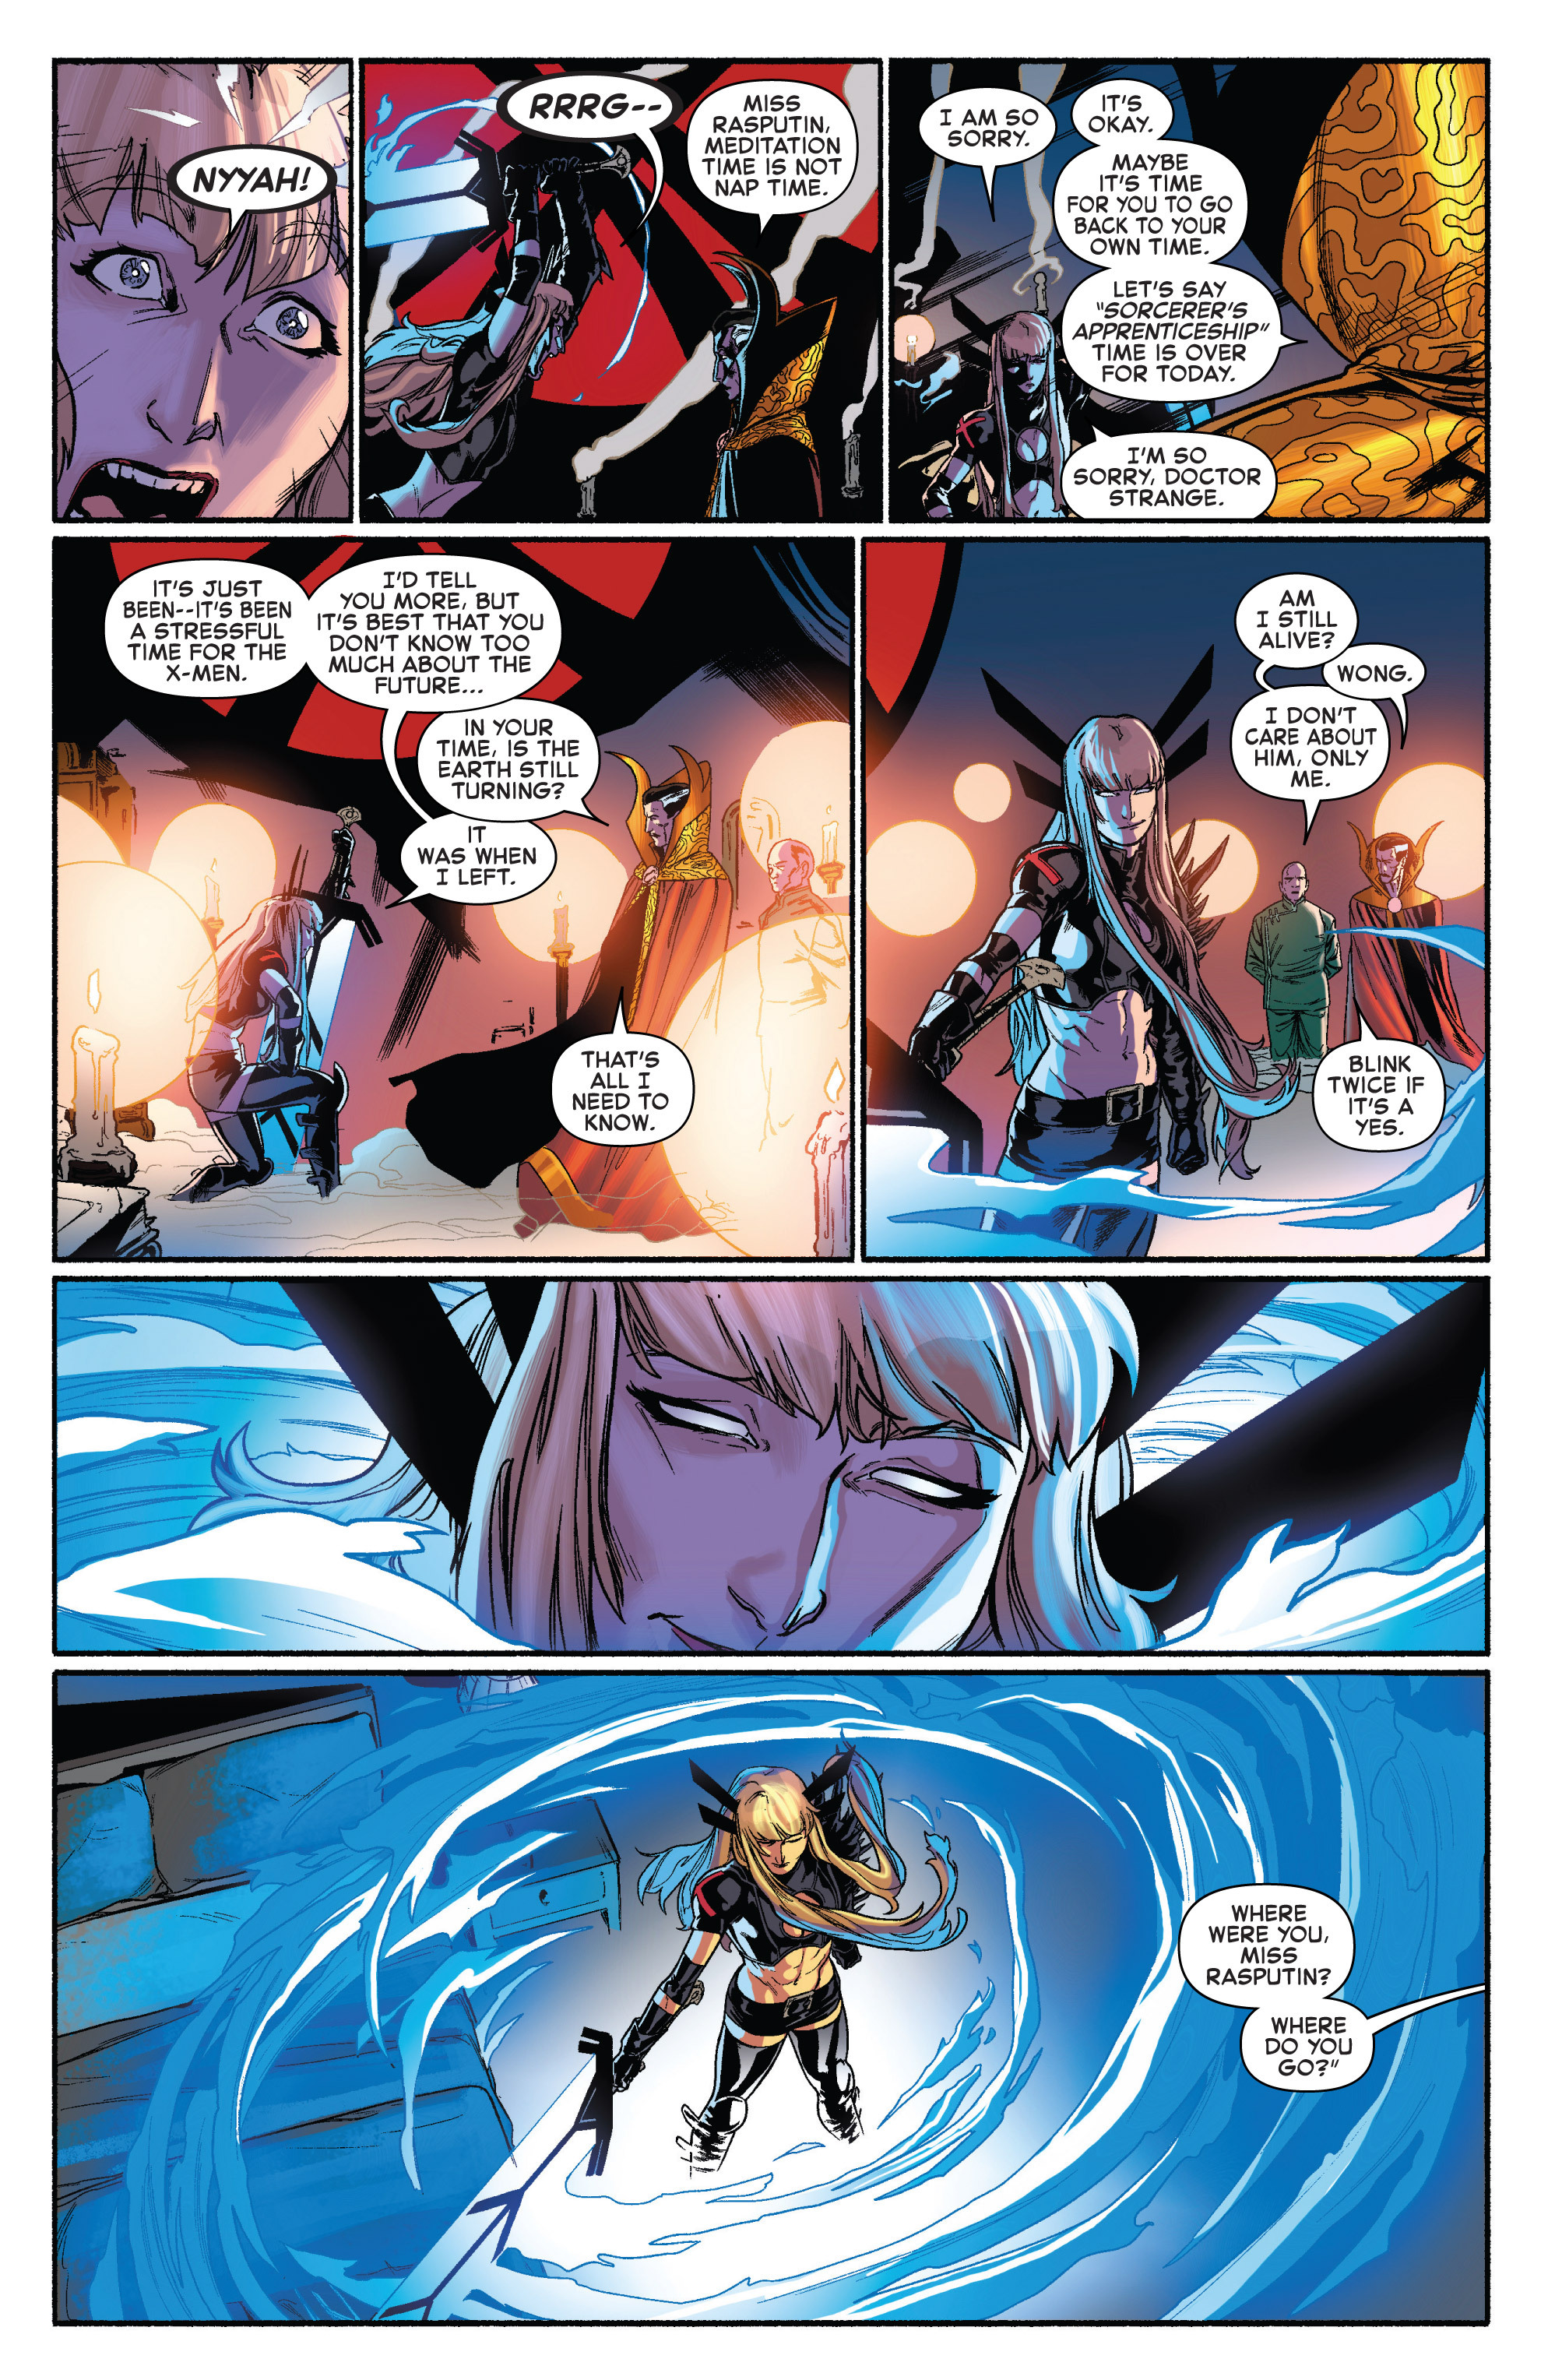 Read online Uncanny X-Men (2013) comic -  Issue # _TPB 3 - The Good, The Bad, The Inhuman - 28